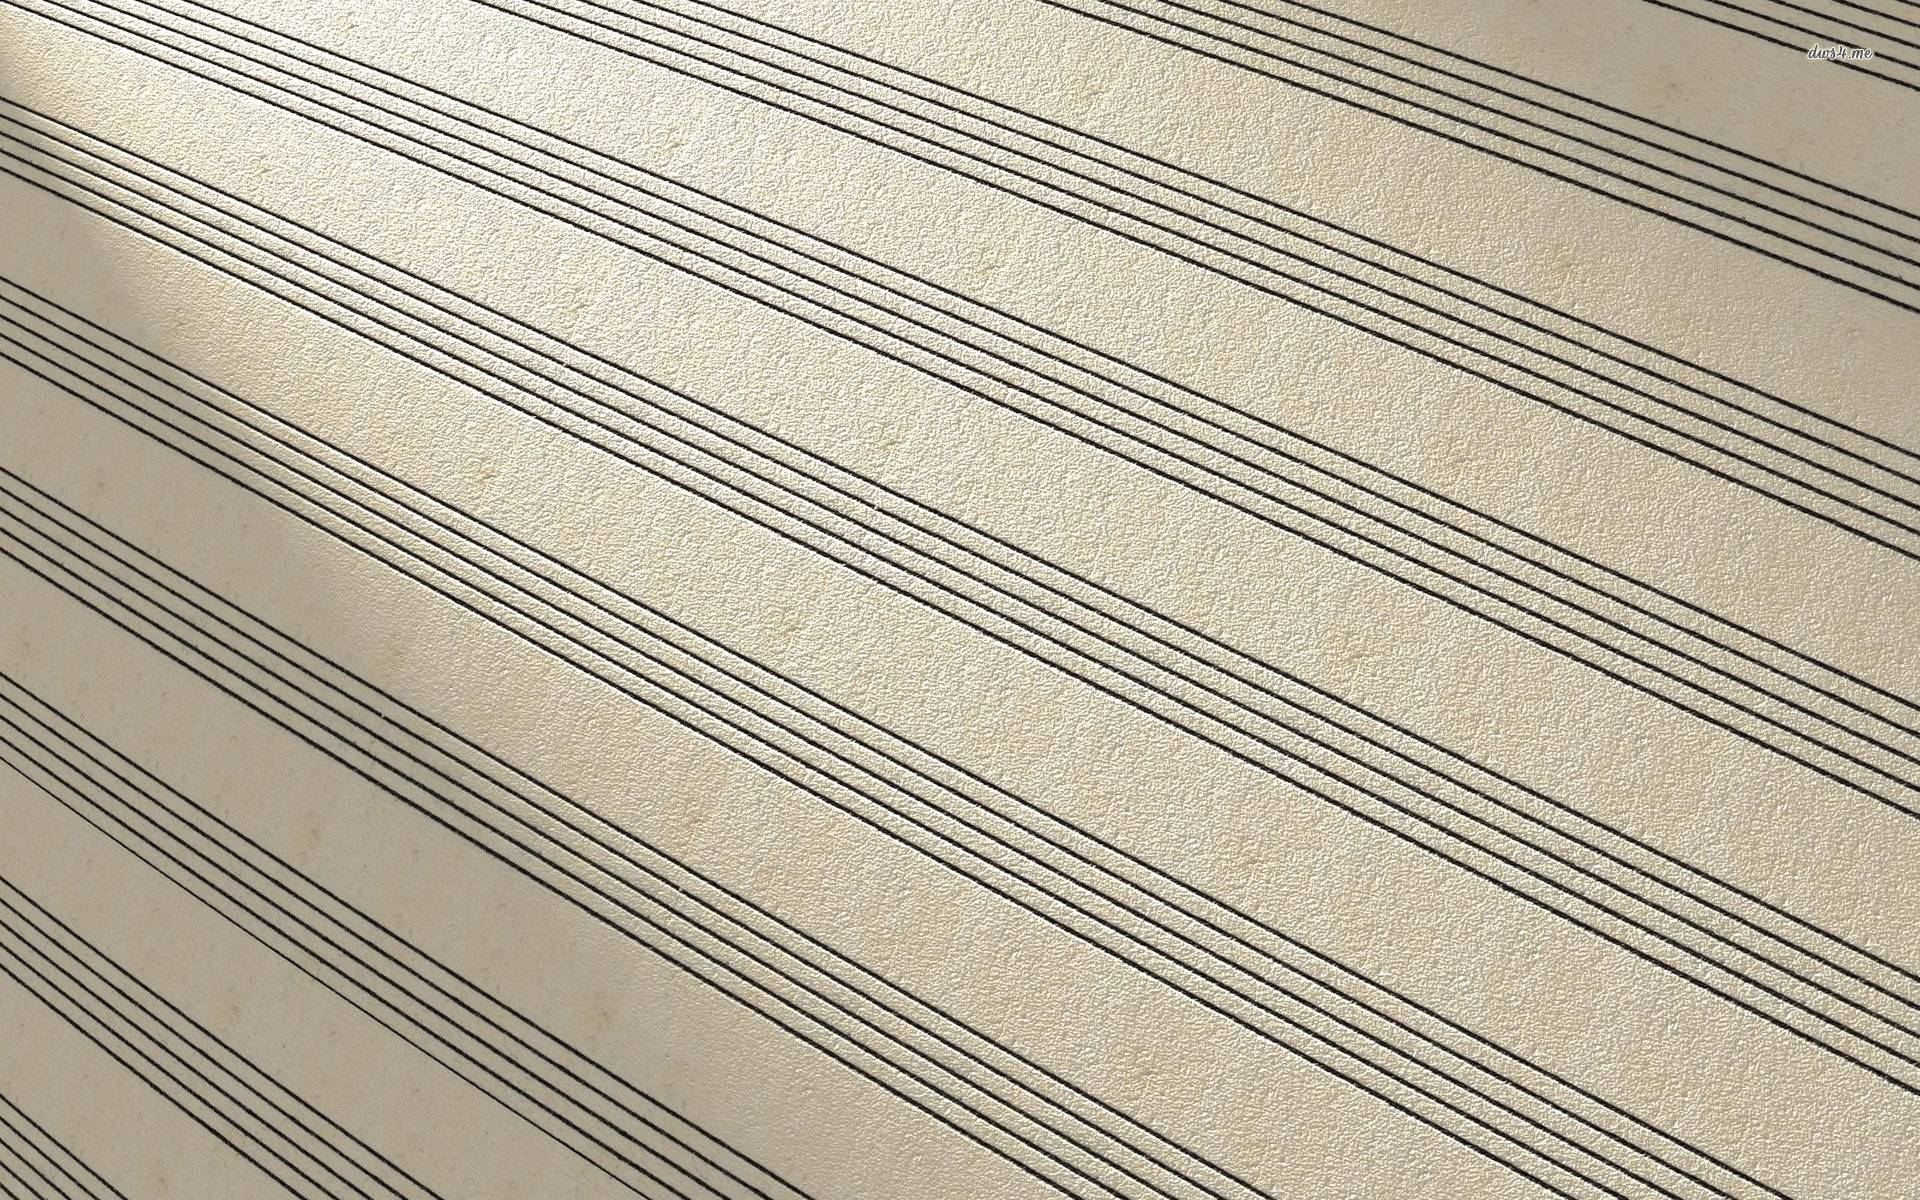 sheet music 2 wallpaper - photo #20